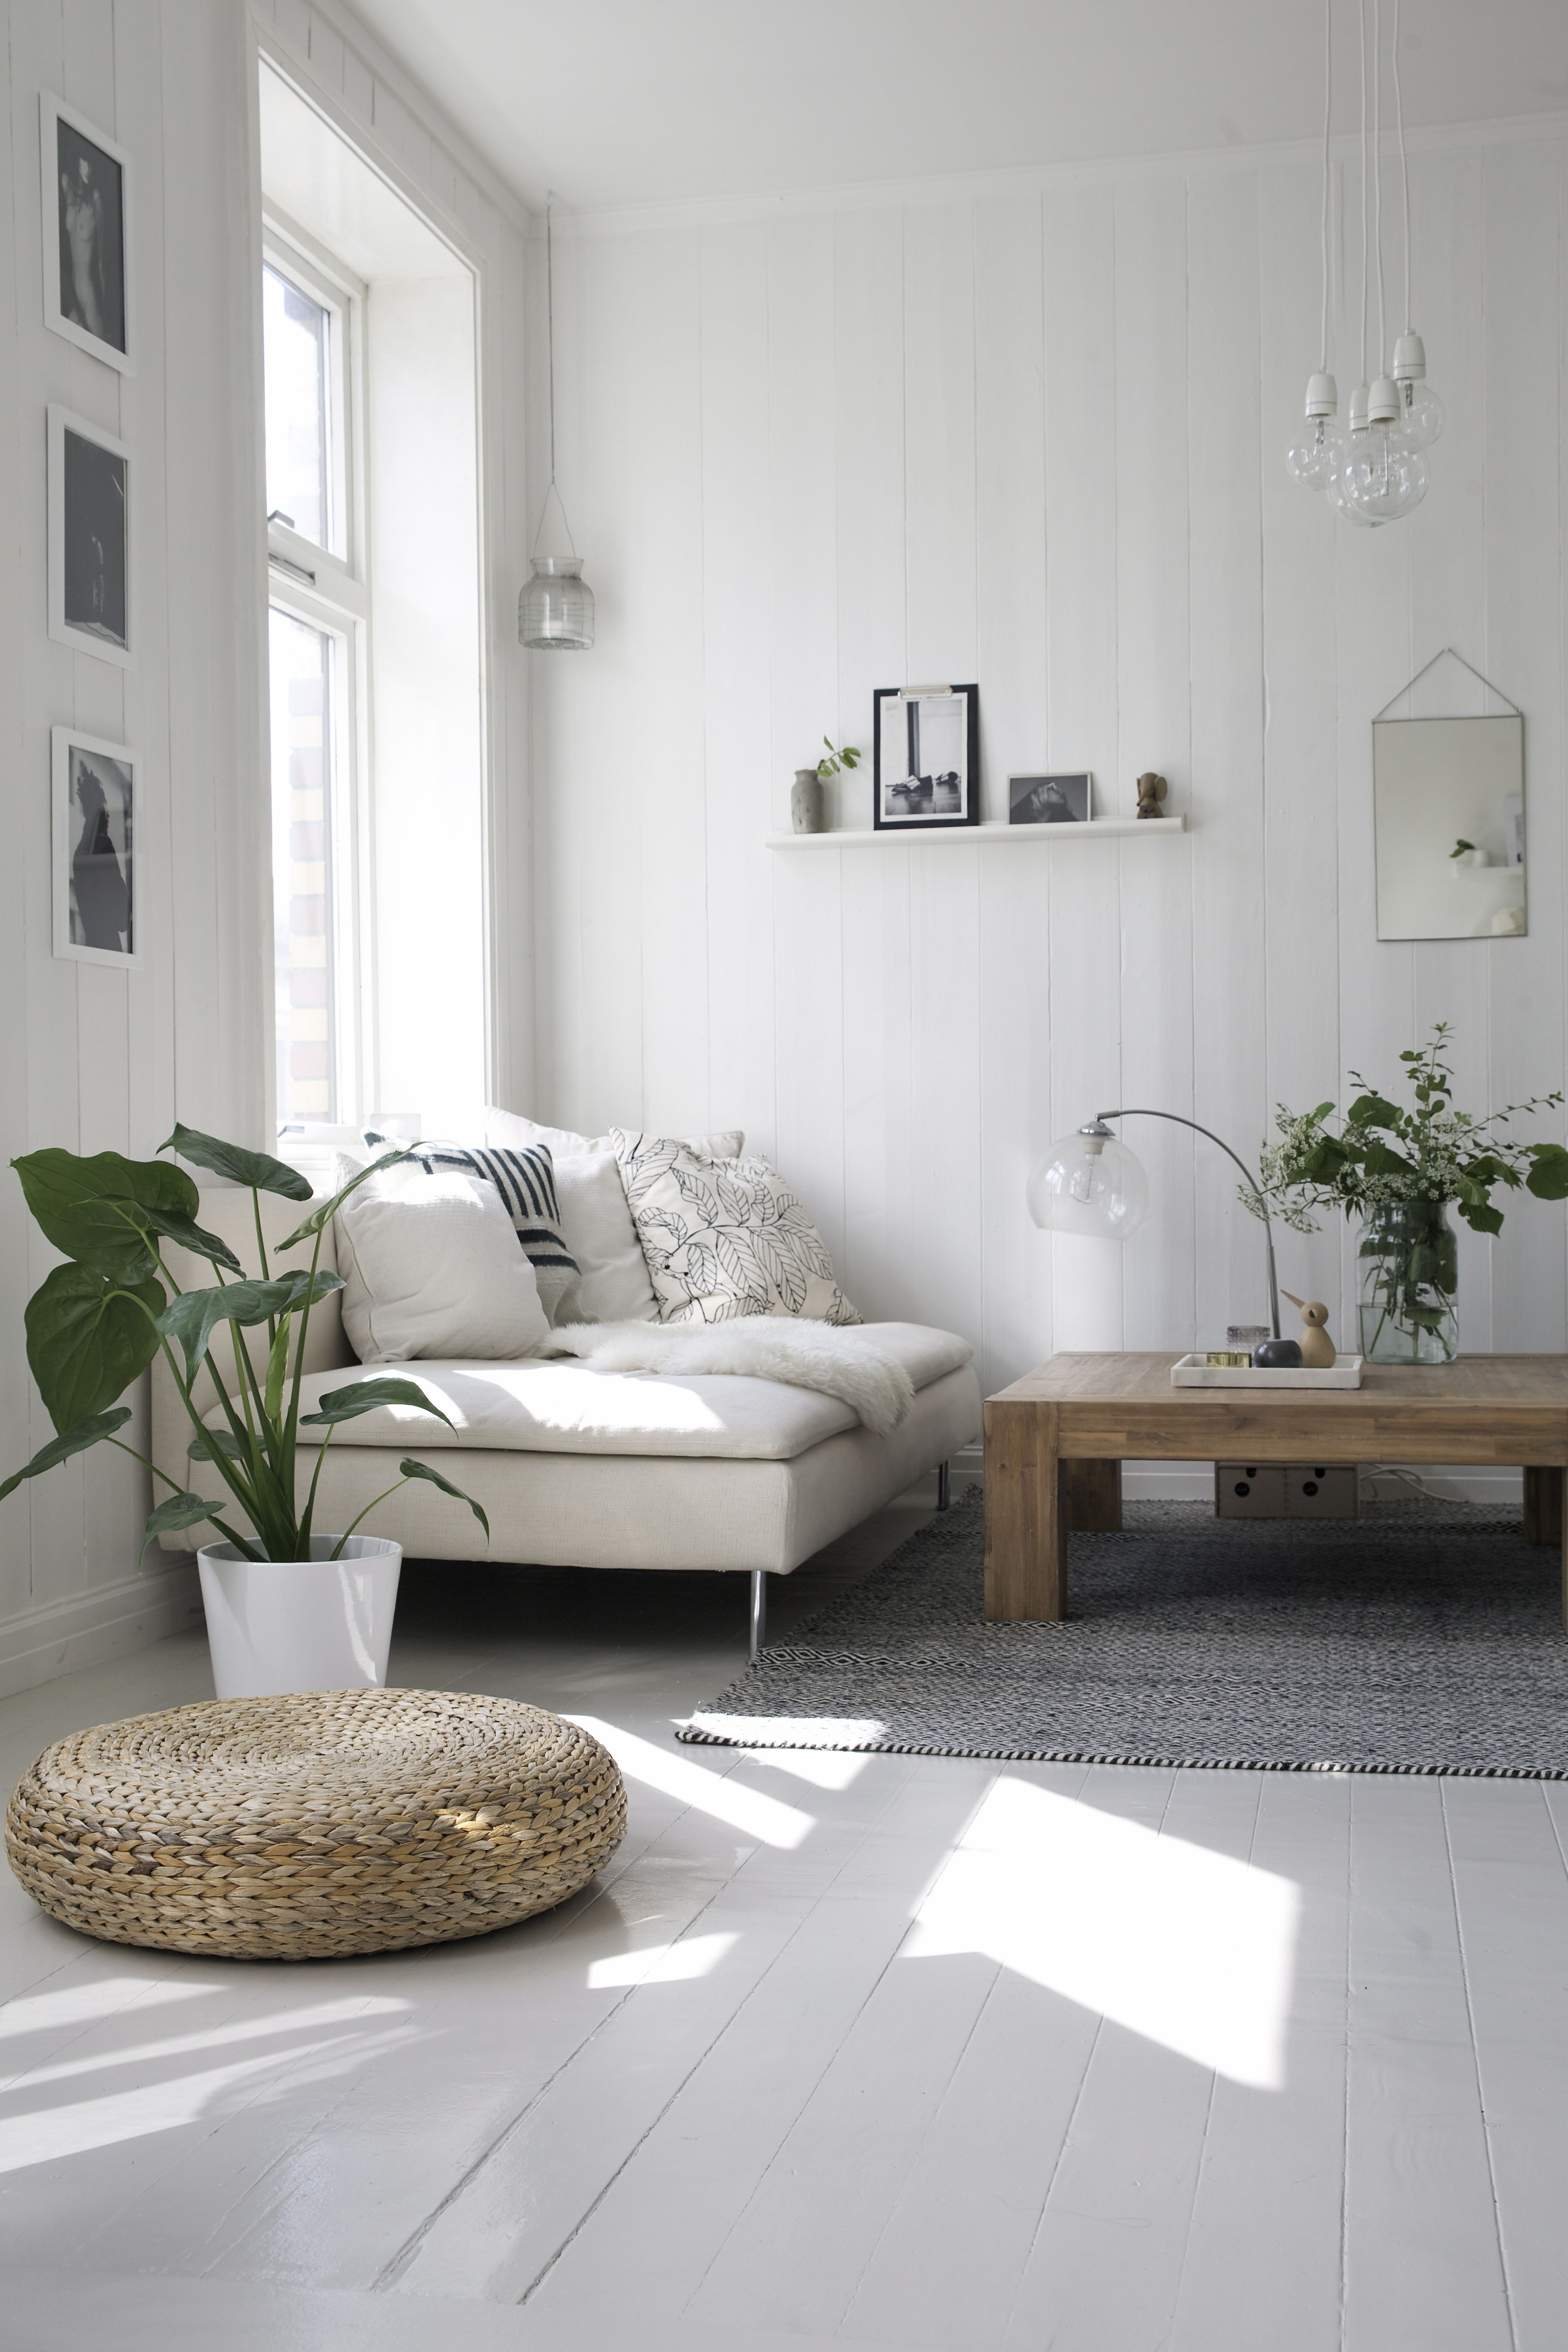 Pleasing Not Good For My Life But Absolutely Love All White Rooms With Just Largest Home Design Picture Inspirations Pitcheantrous